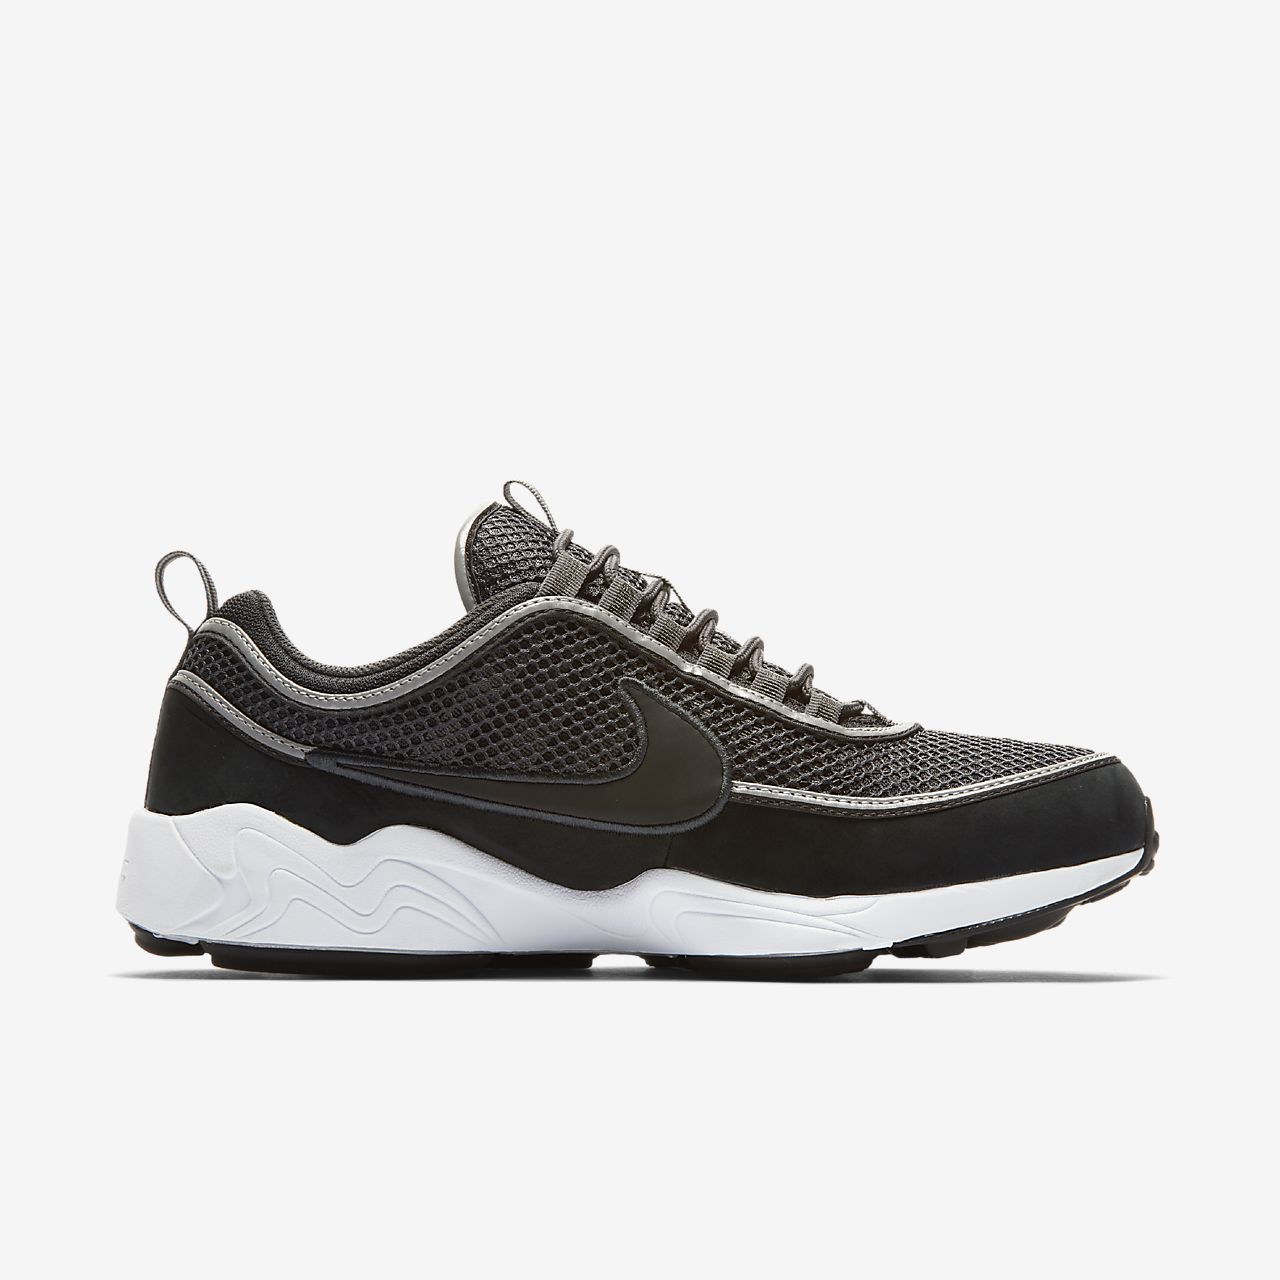 ... Nike Air Zoom Spiridon 16 SE Men's Shoe